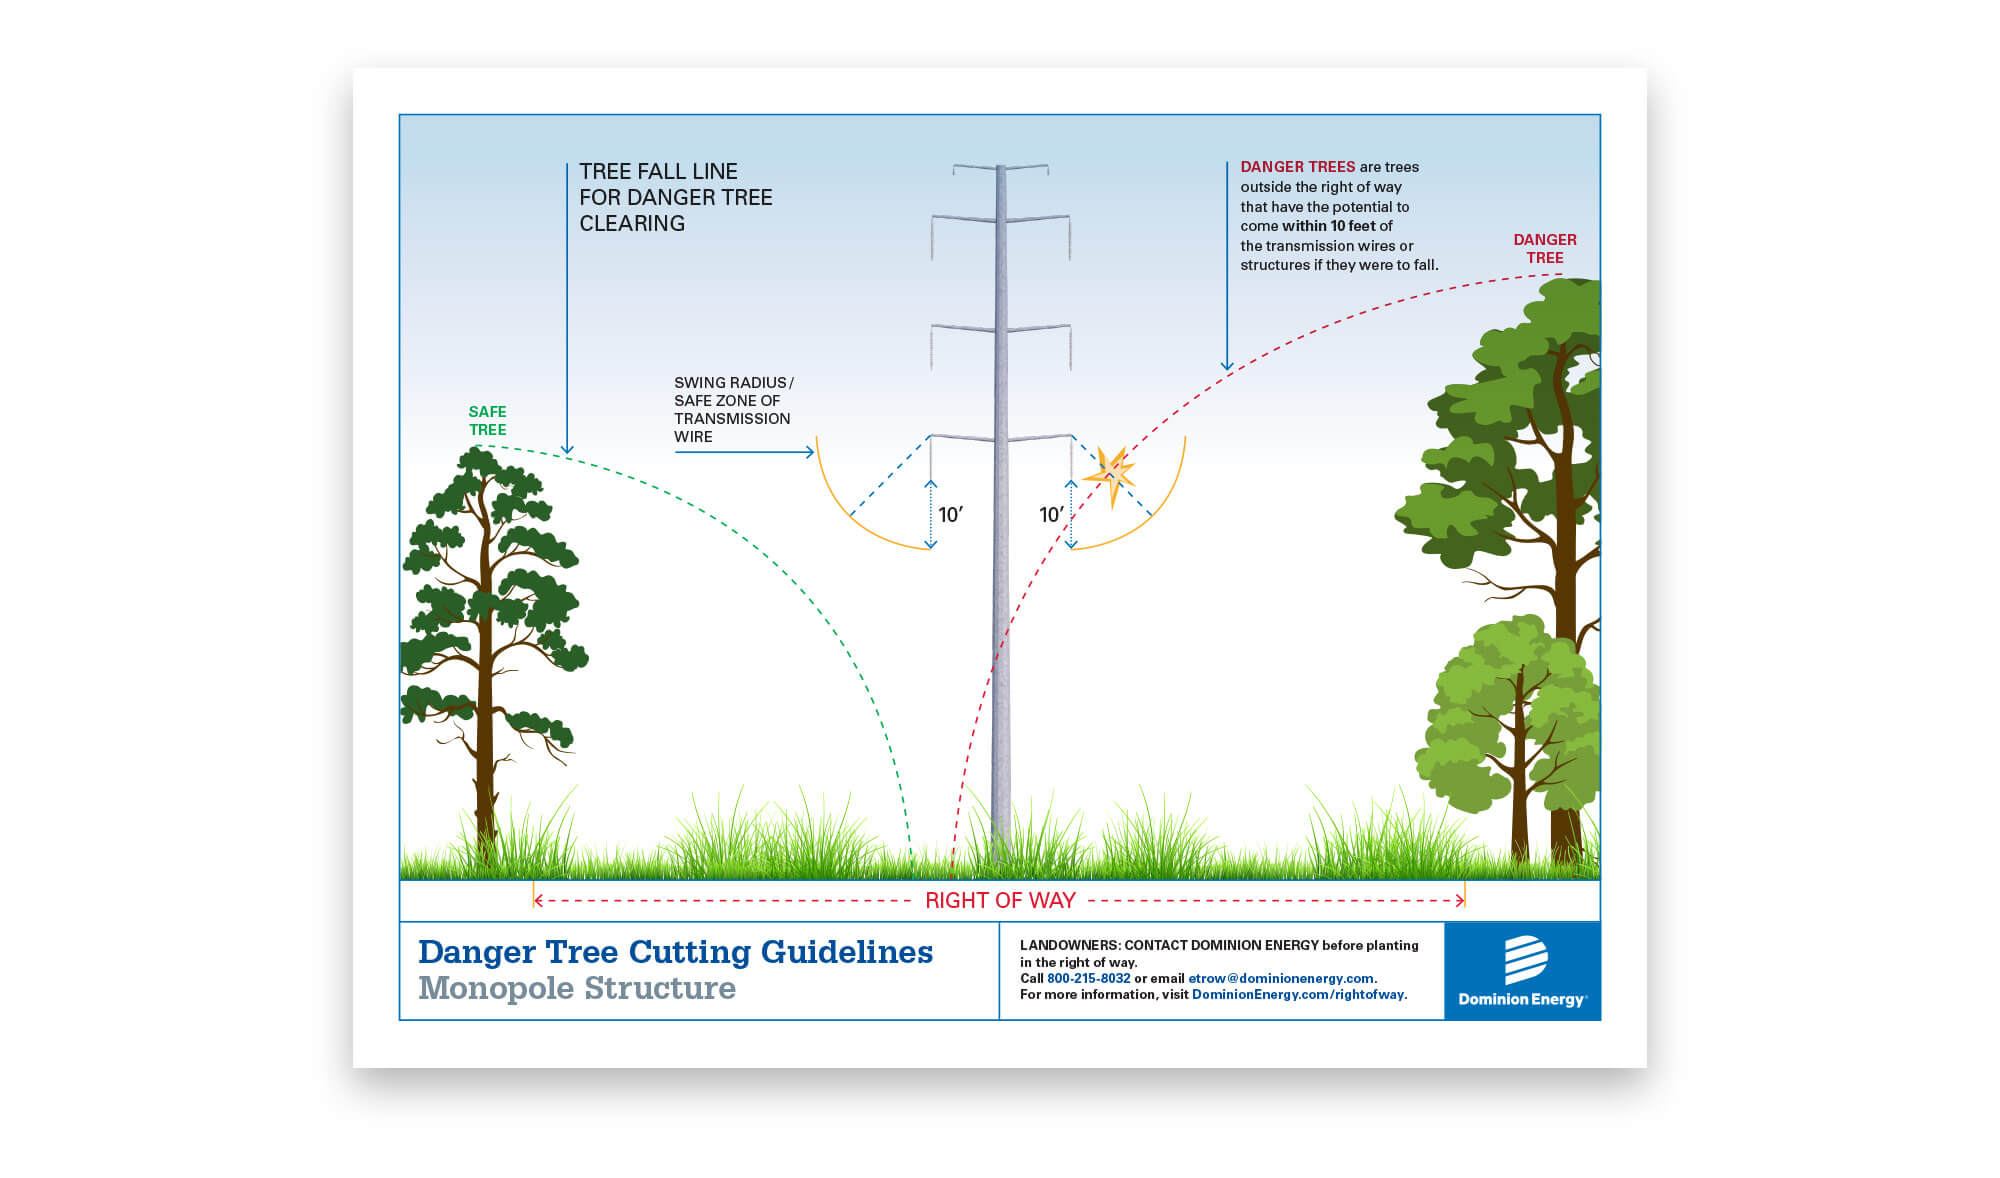 Danger Tree Cutting Guideline: Monopole